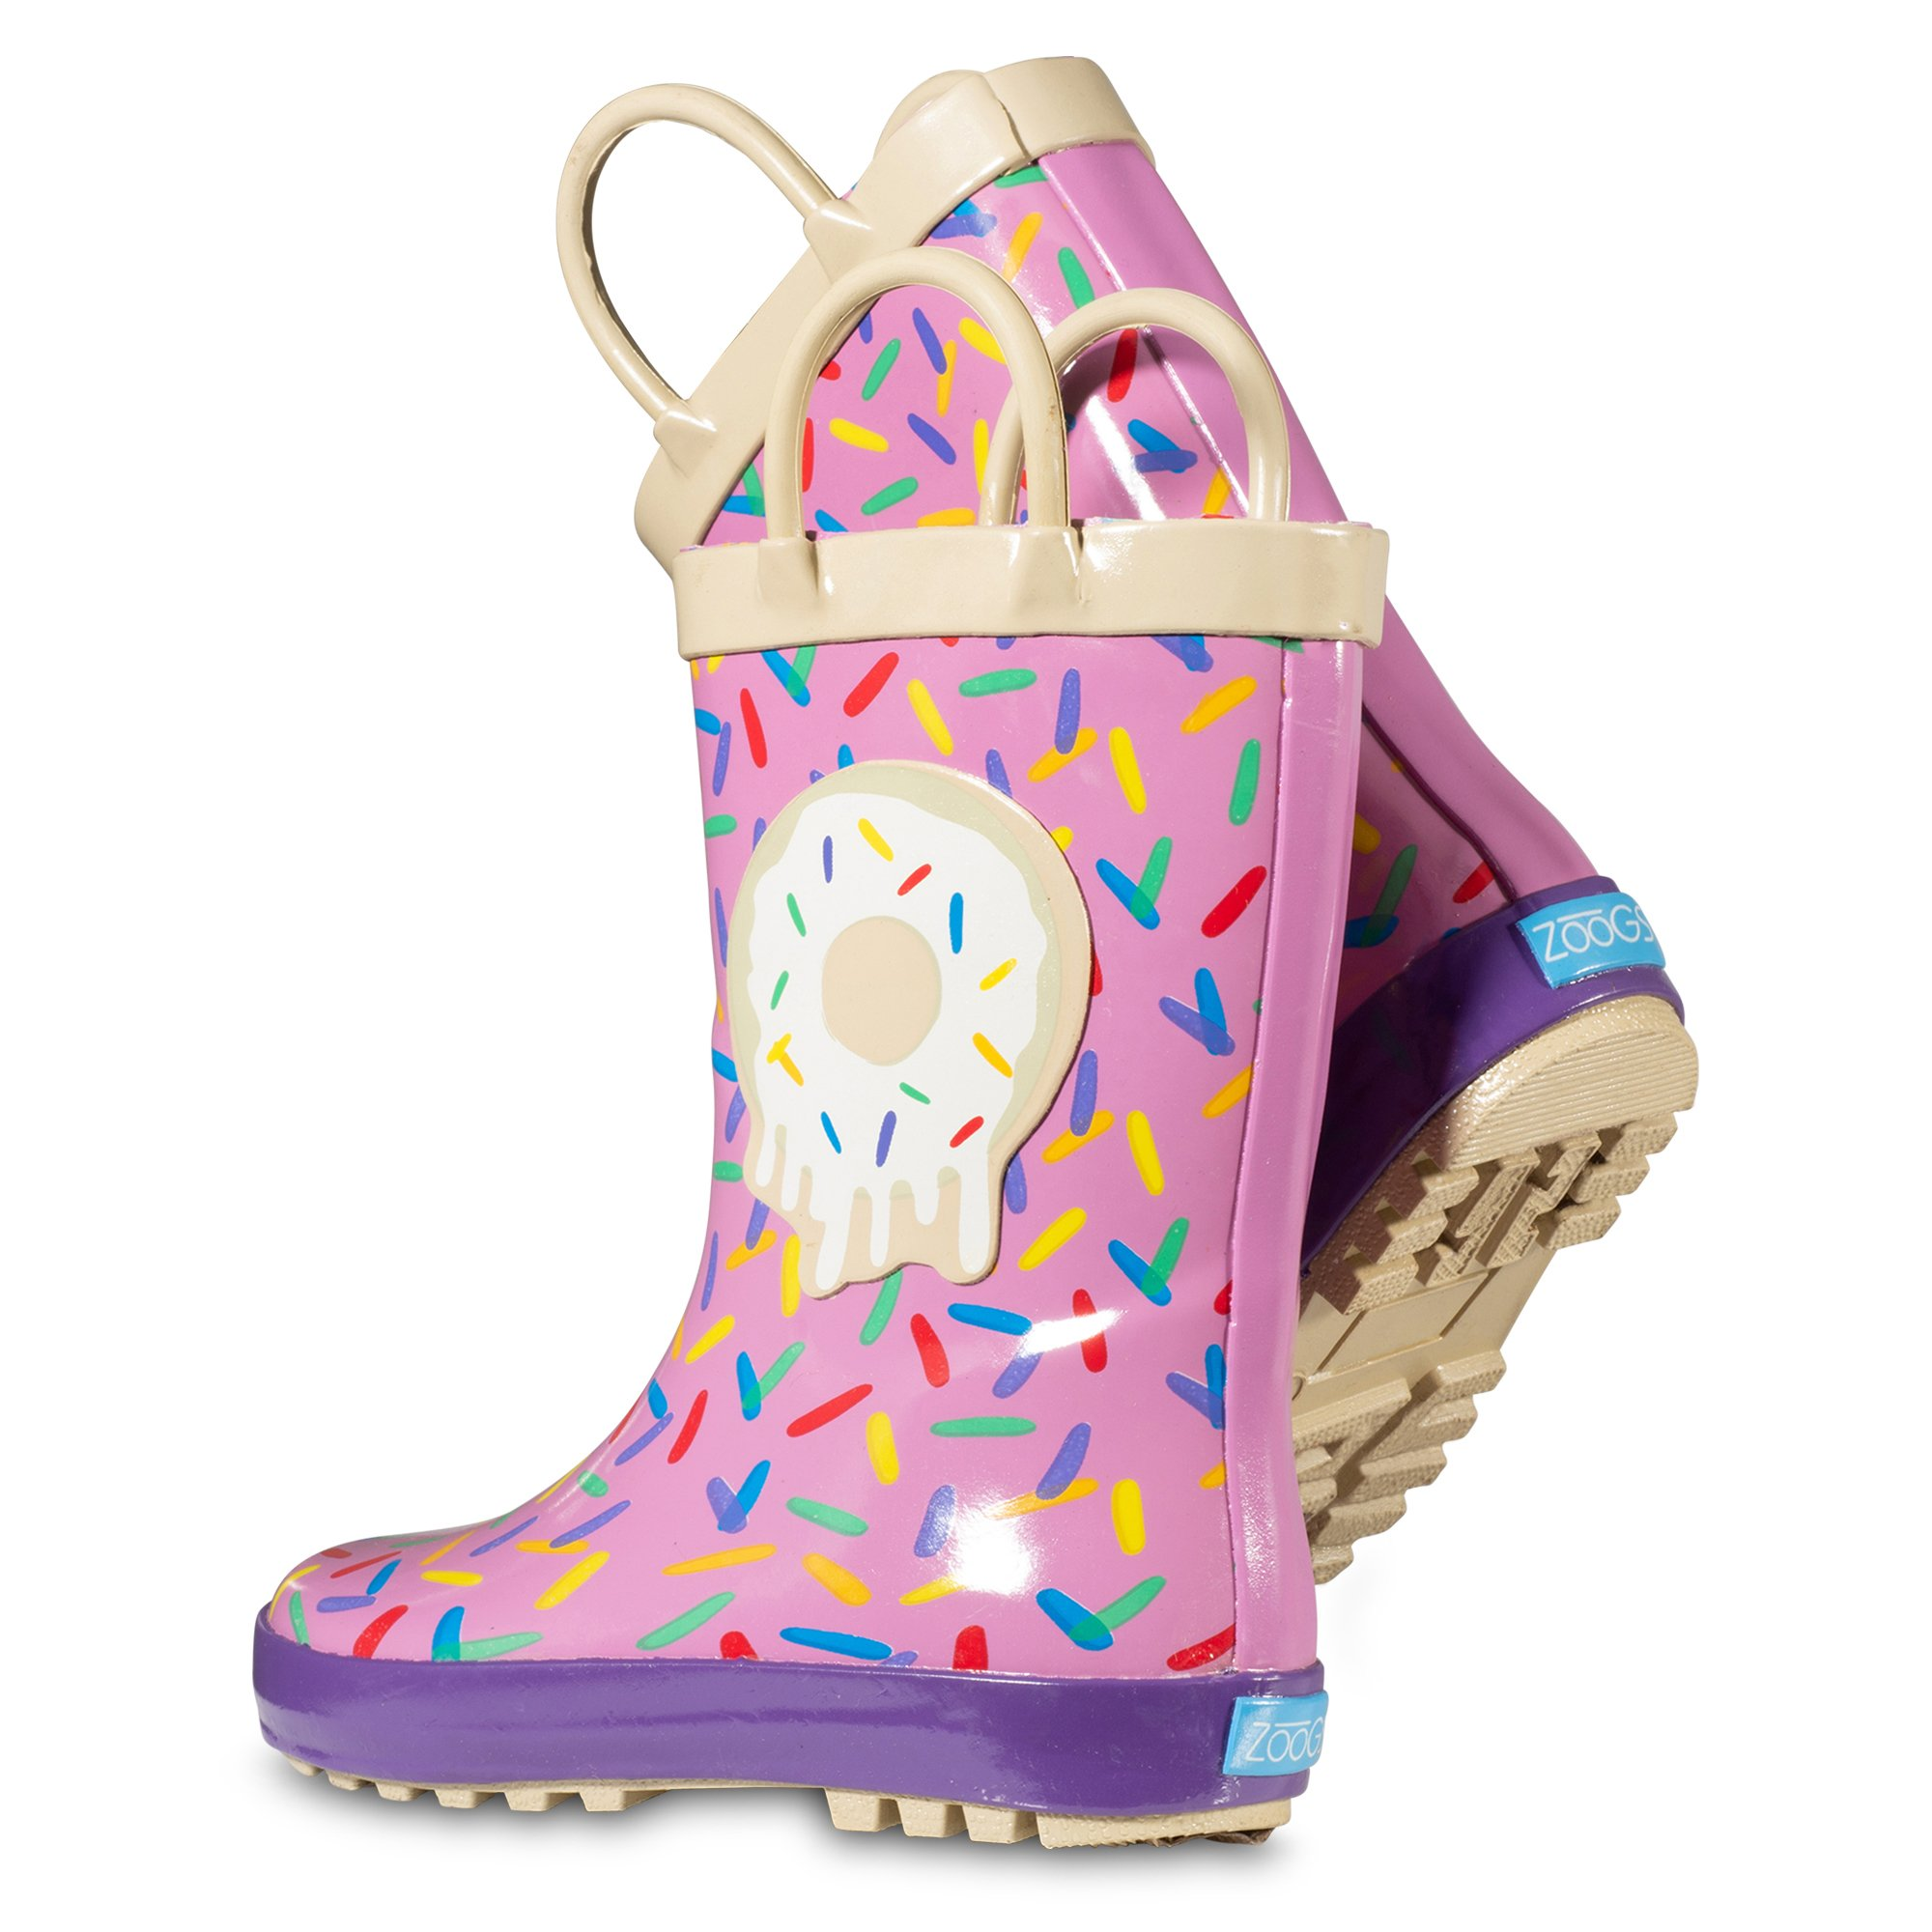 ZOOGS Children's Rubber Rain Boots, Little Kids & Toddler, Boys & Girls Patterns by ZOOGS (Image #4)